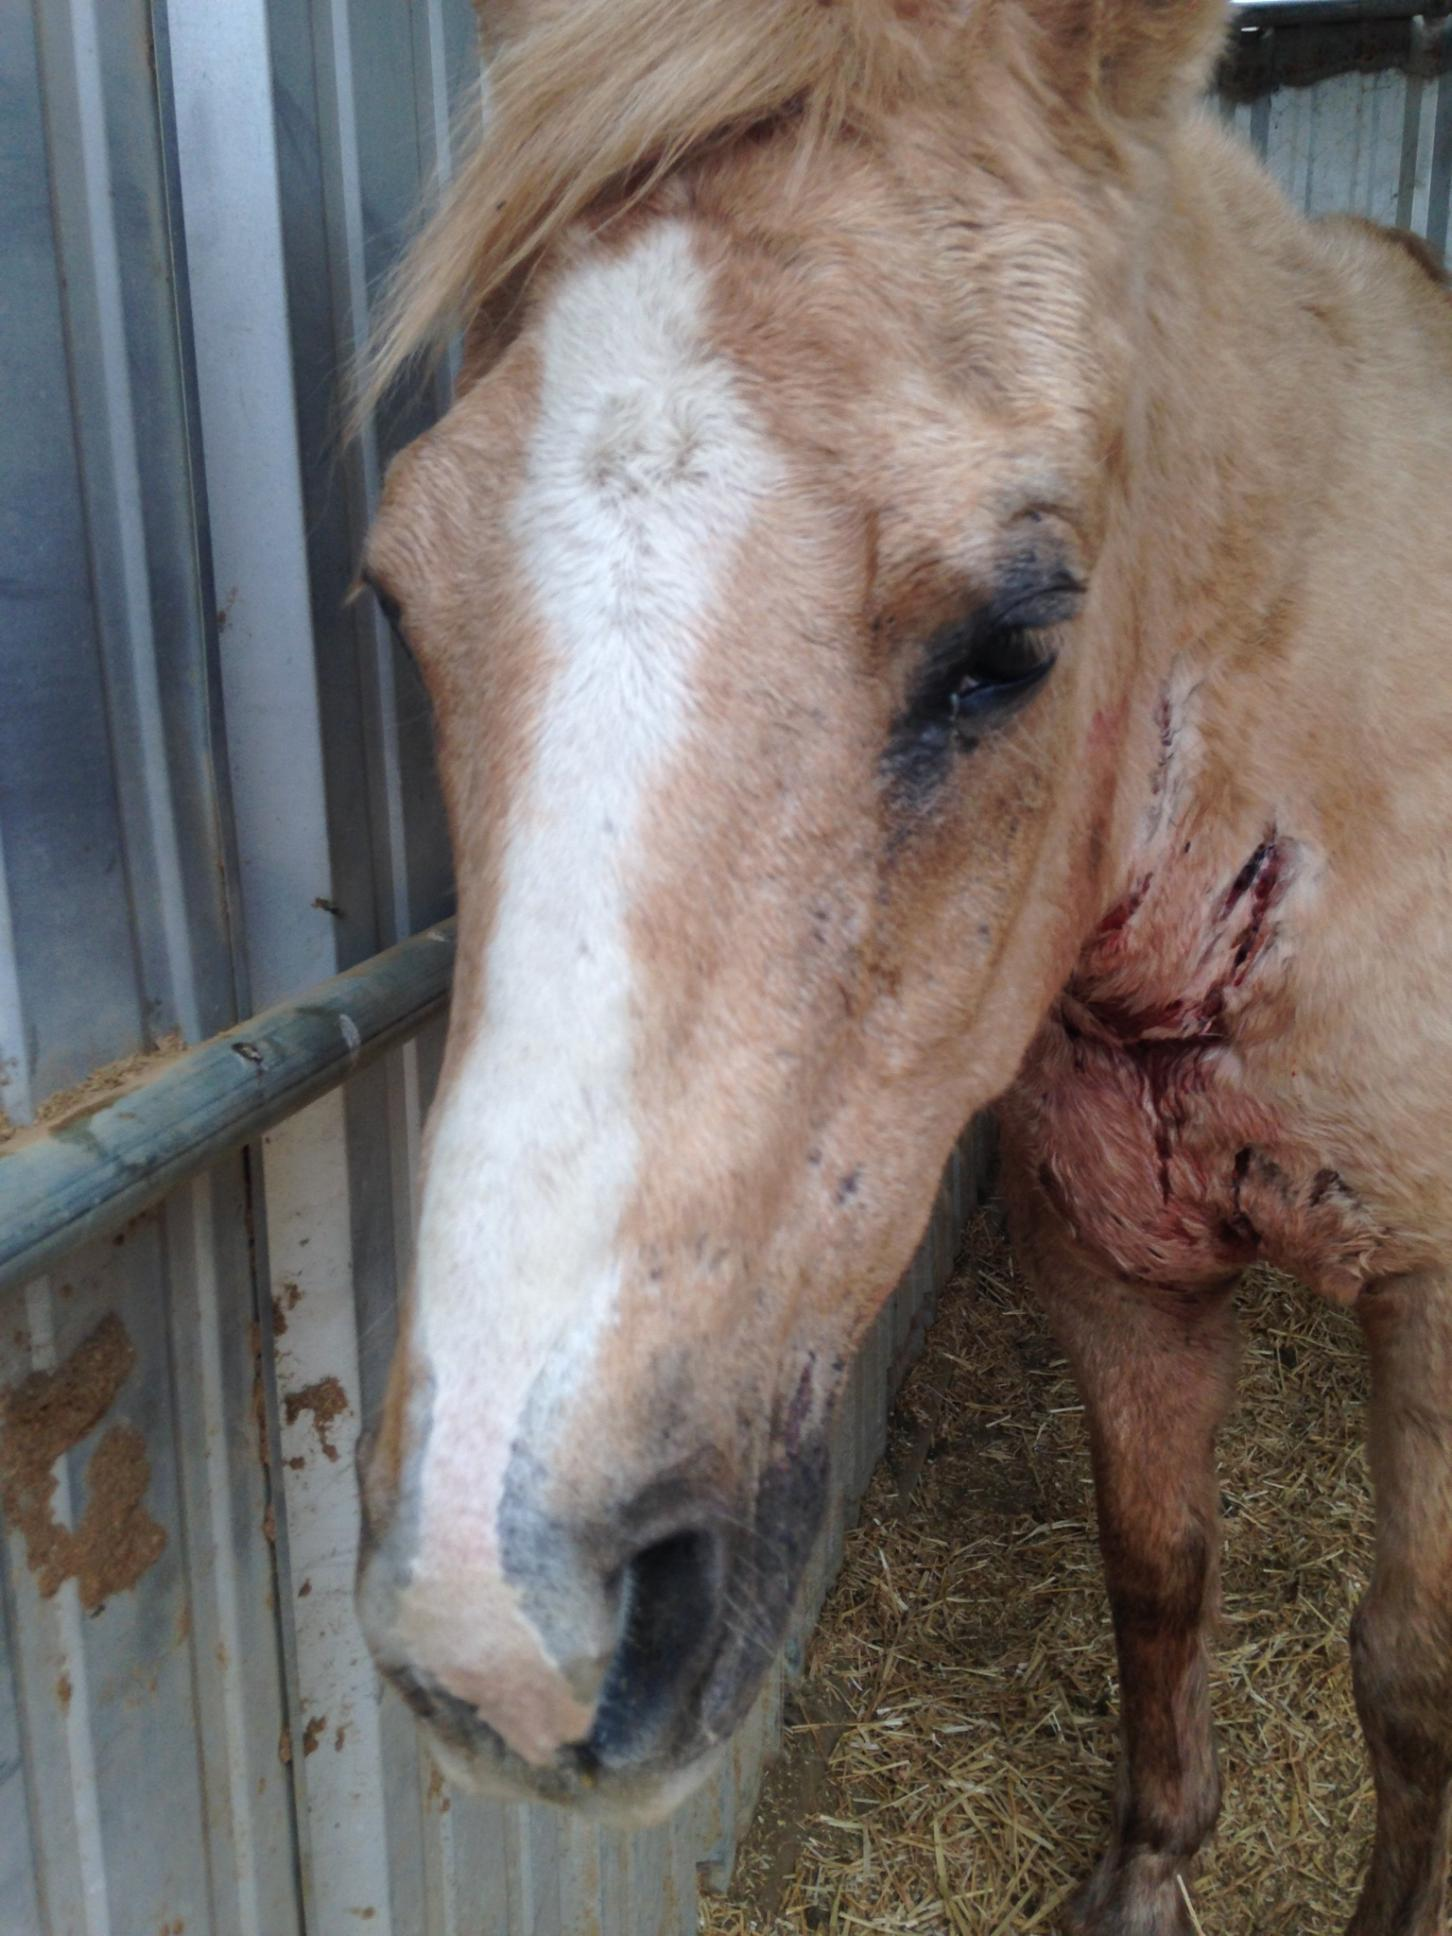 If you'd like to help, please click image to go to read Xena's story!